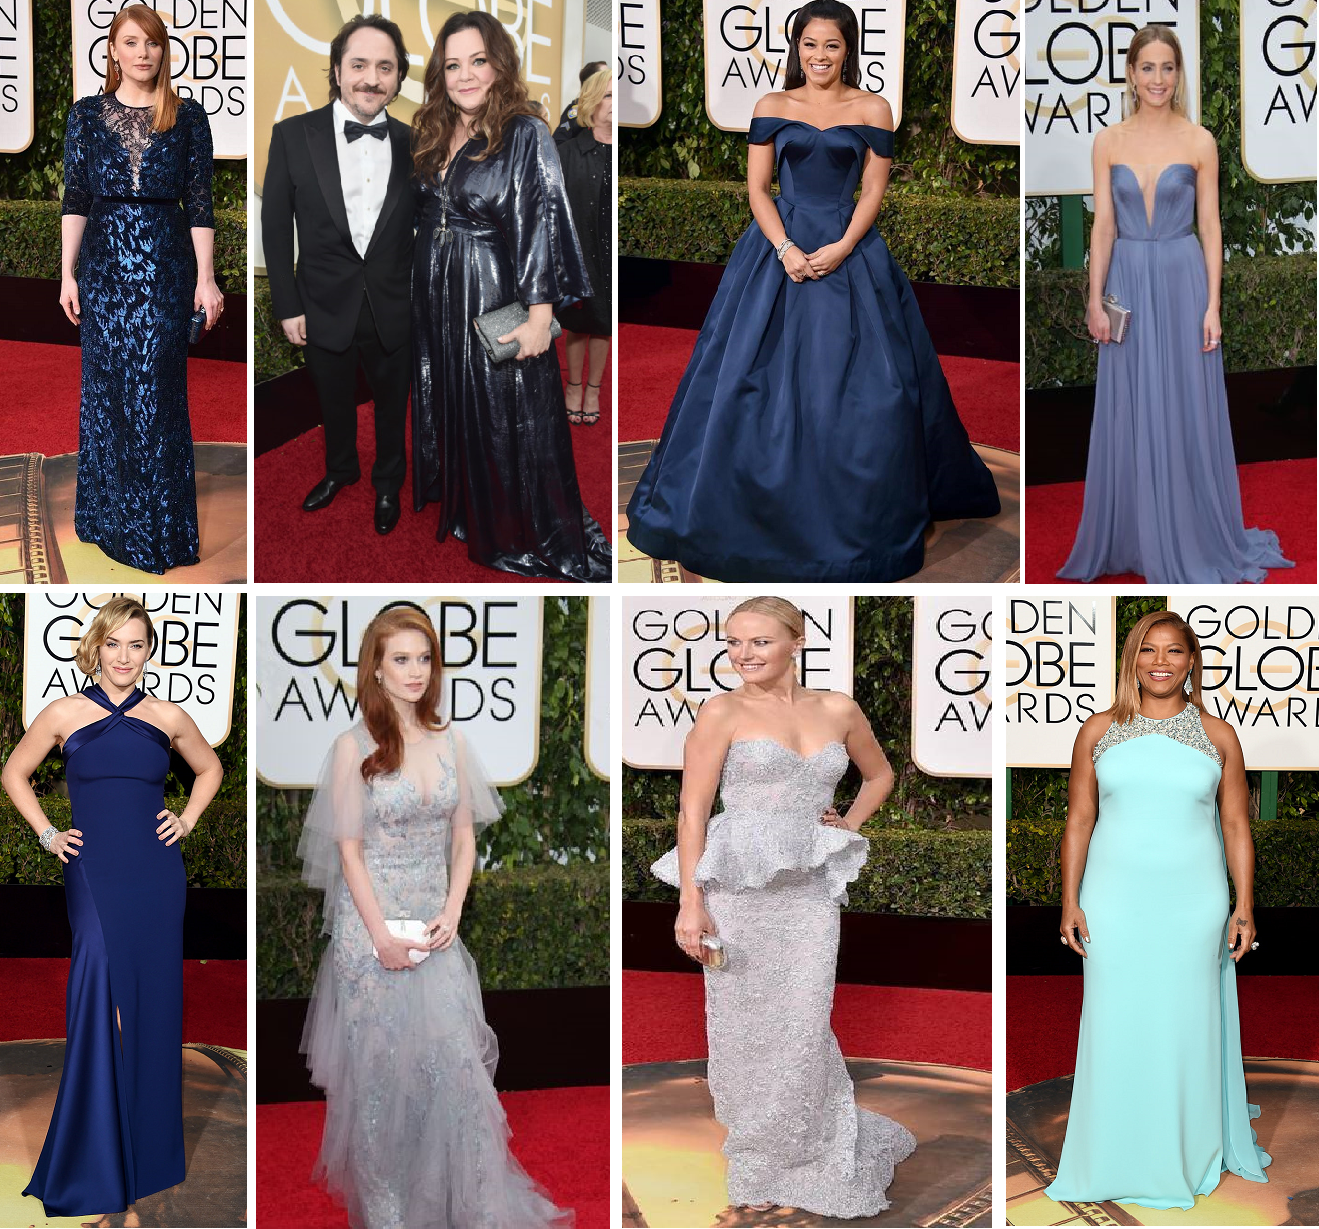 And Oceans were blue - Bryce Dallas Howard in Jenny Packham, Melissa McCarthy in a personal design, Gina Rodriguez in Zac Posen, Joanne Froggart in Reem Accra, Kate Winslet in Ralph Lauren, Sarah Hay, Malin Ackerman in Reem Accra, Queen Latifah in Badgley Mischka